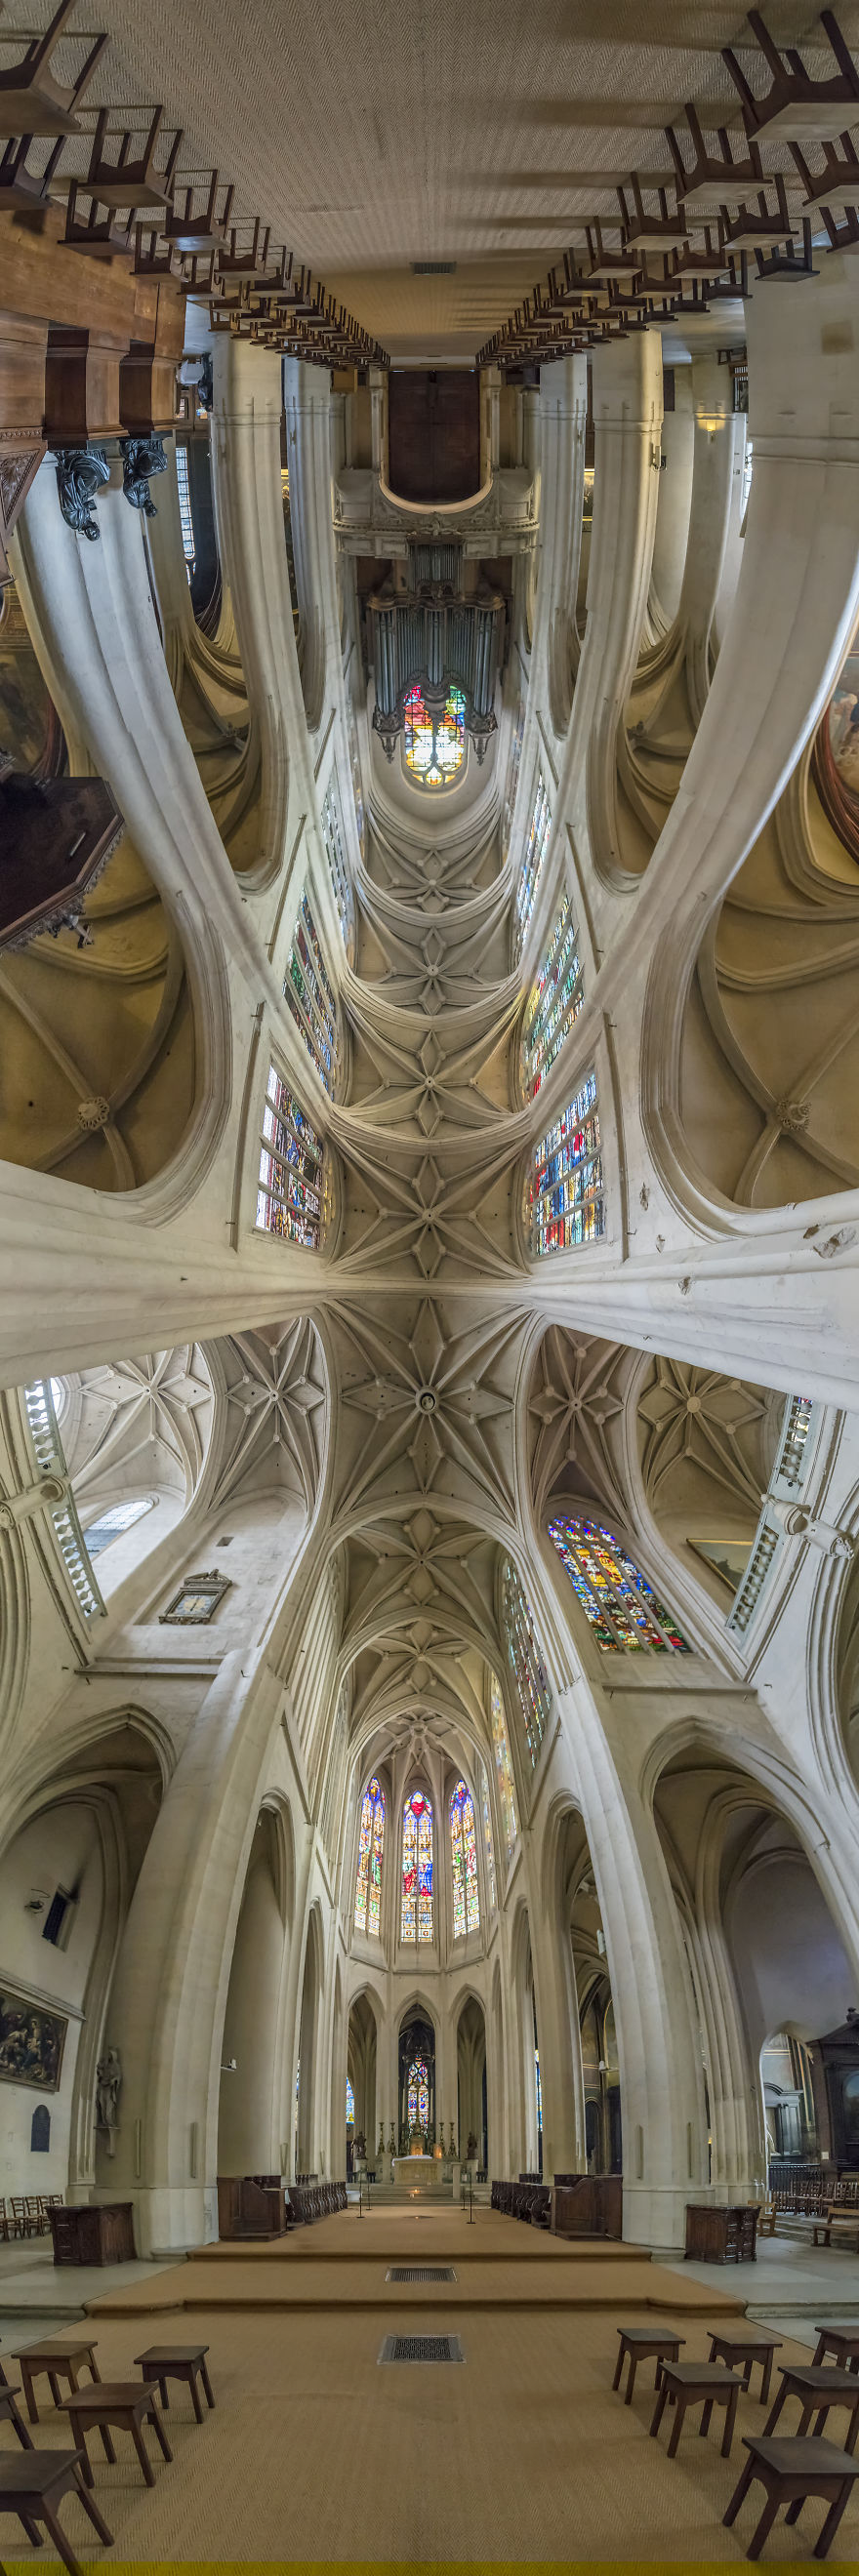 I-Traveled-to-Paris-and-Photographed-Churches-in-a-Vertical-Panorama-5afb56cf6f131__880